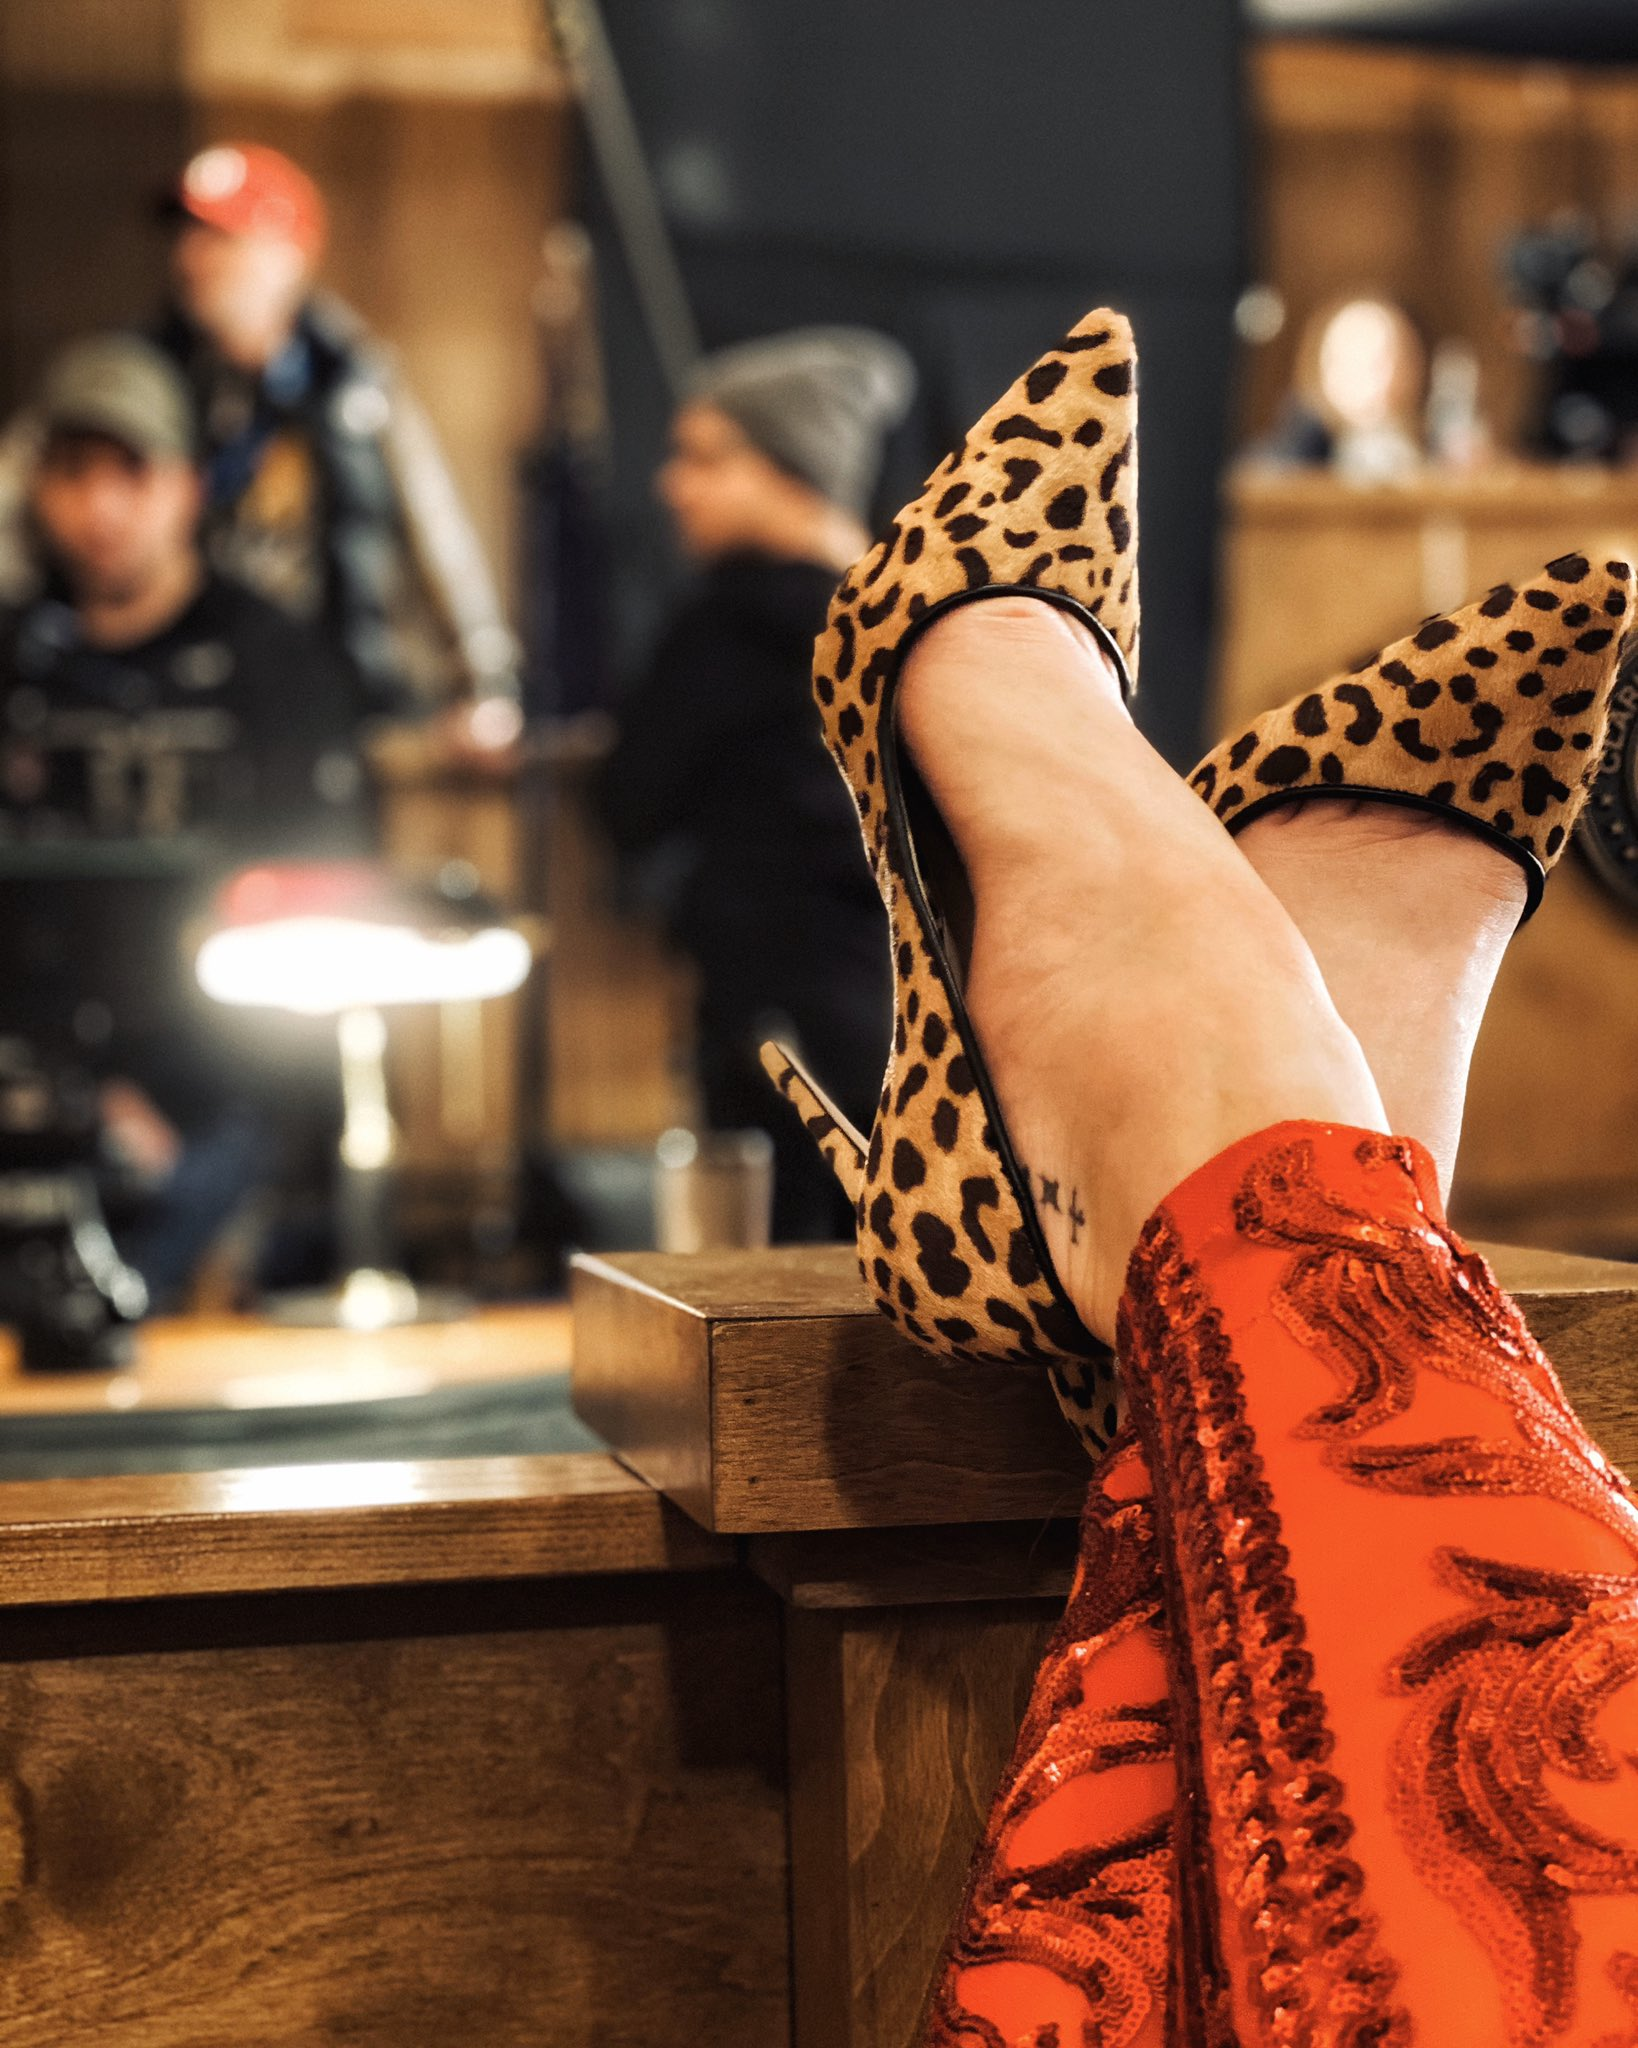 Katherine Mcnamara On Twitter Julie Lawry S Last Stand Of Course She Does It With Her Leopard Clad Feet Up It S A Wrap For This Pink Haired Hellian On Stephenking Thestand Thanks Cbsallaccess